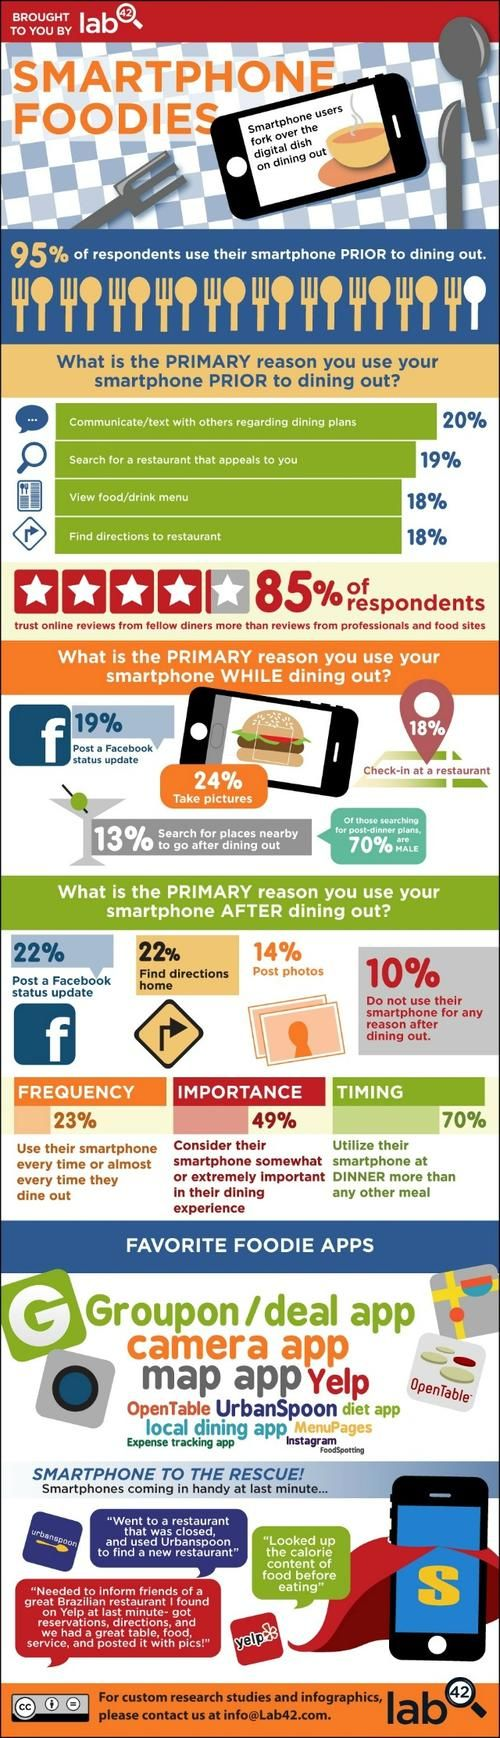 Smartphone Foodies! Right up my alley